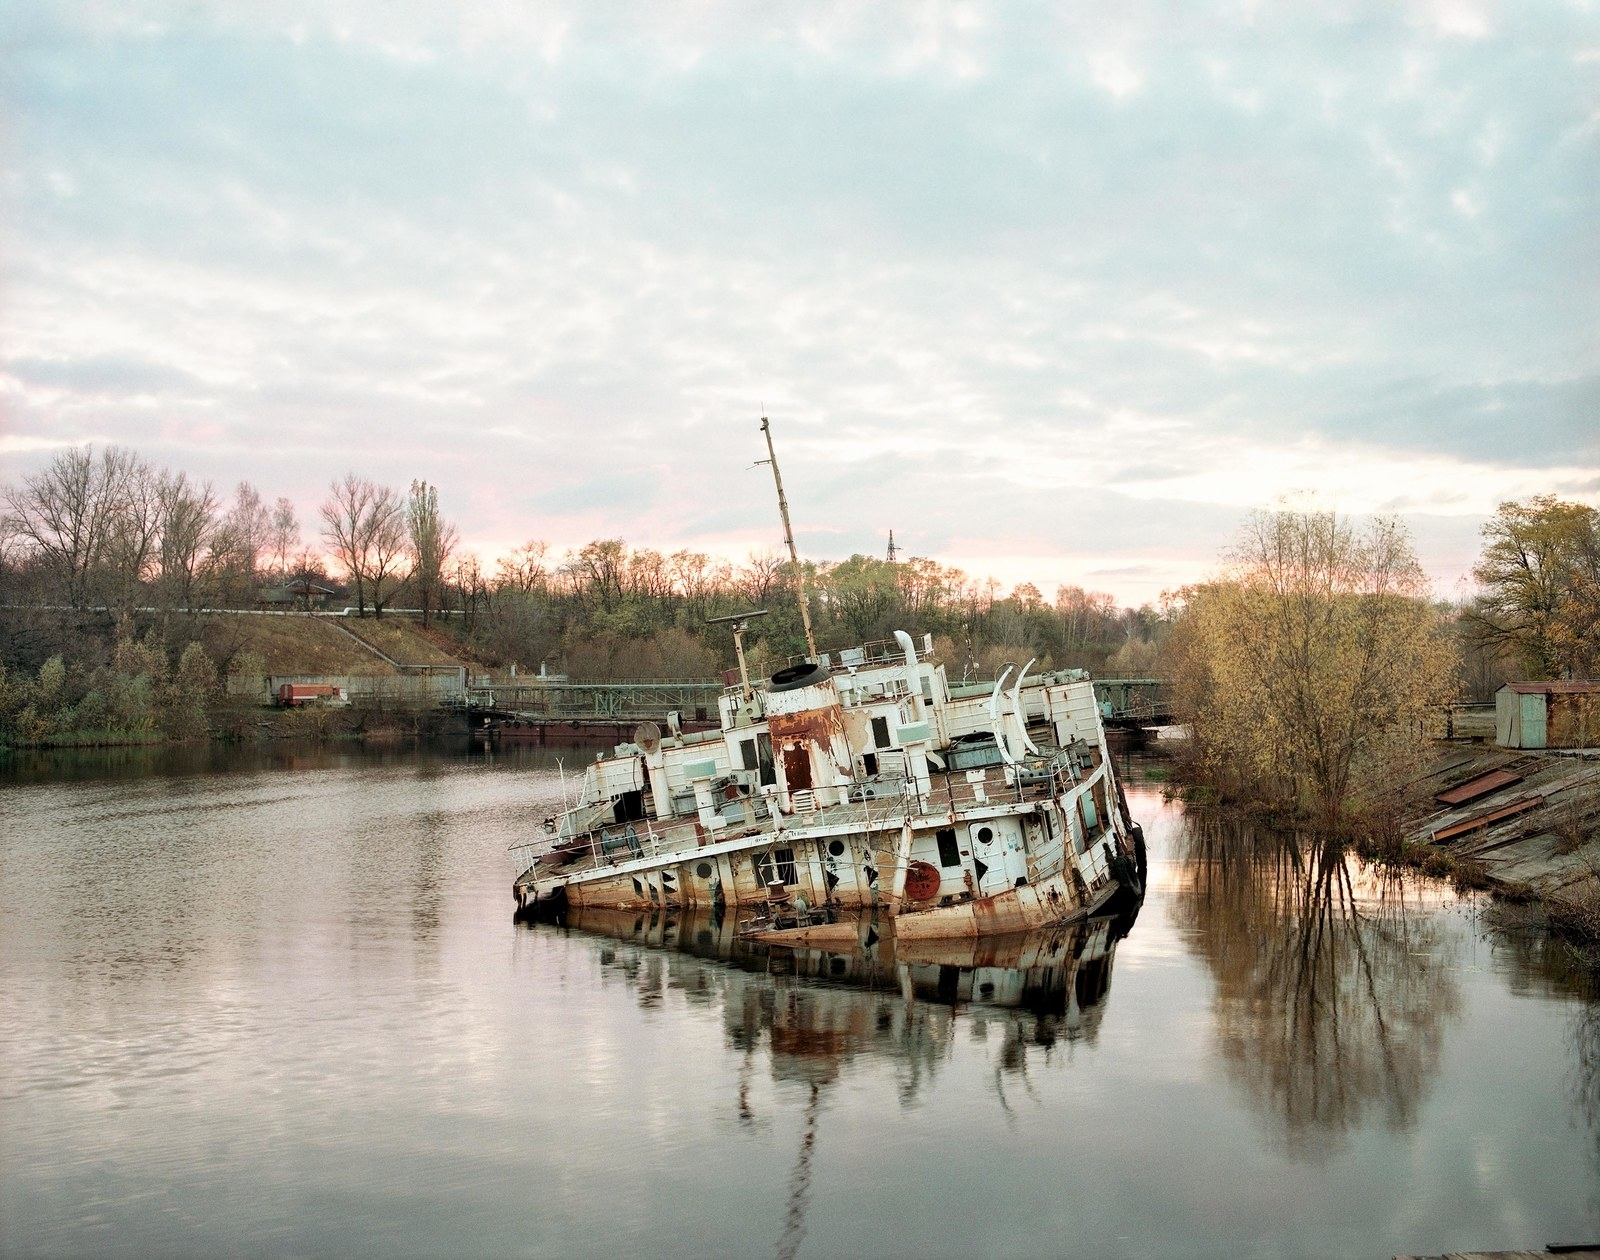 14 Apocalyptic Pictures From The Aftermath Of Chernobyl